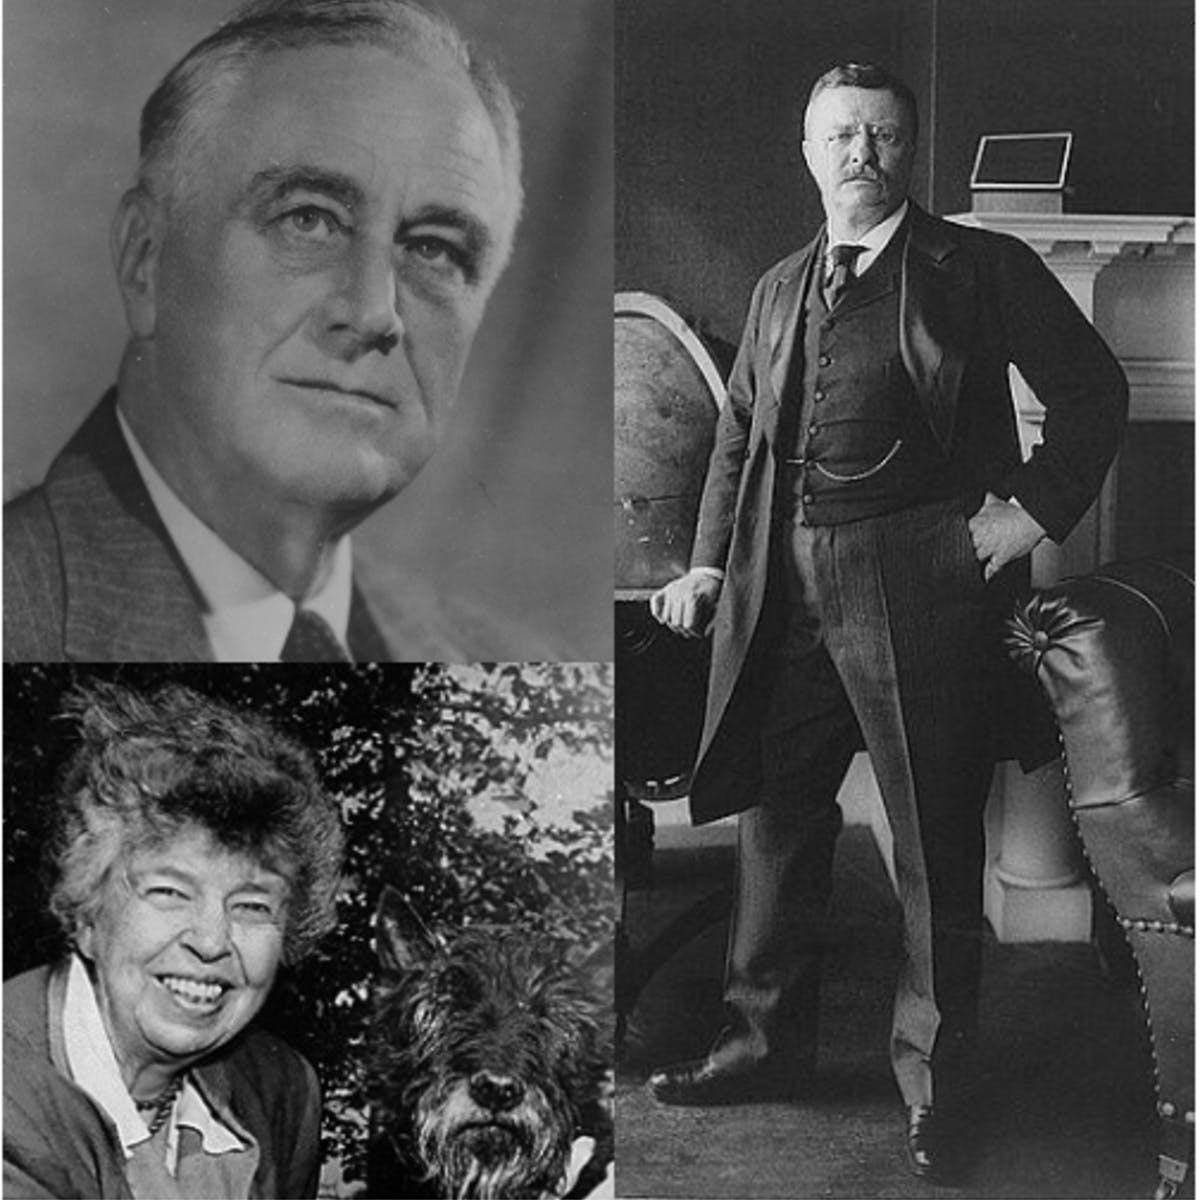 The Rooseveltian Century